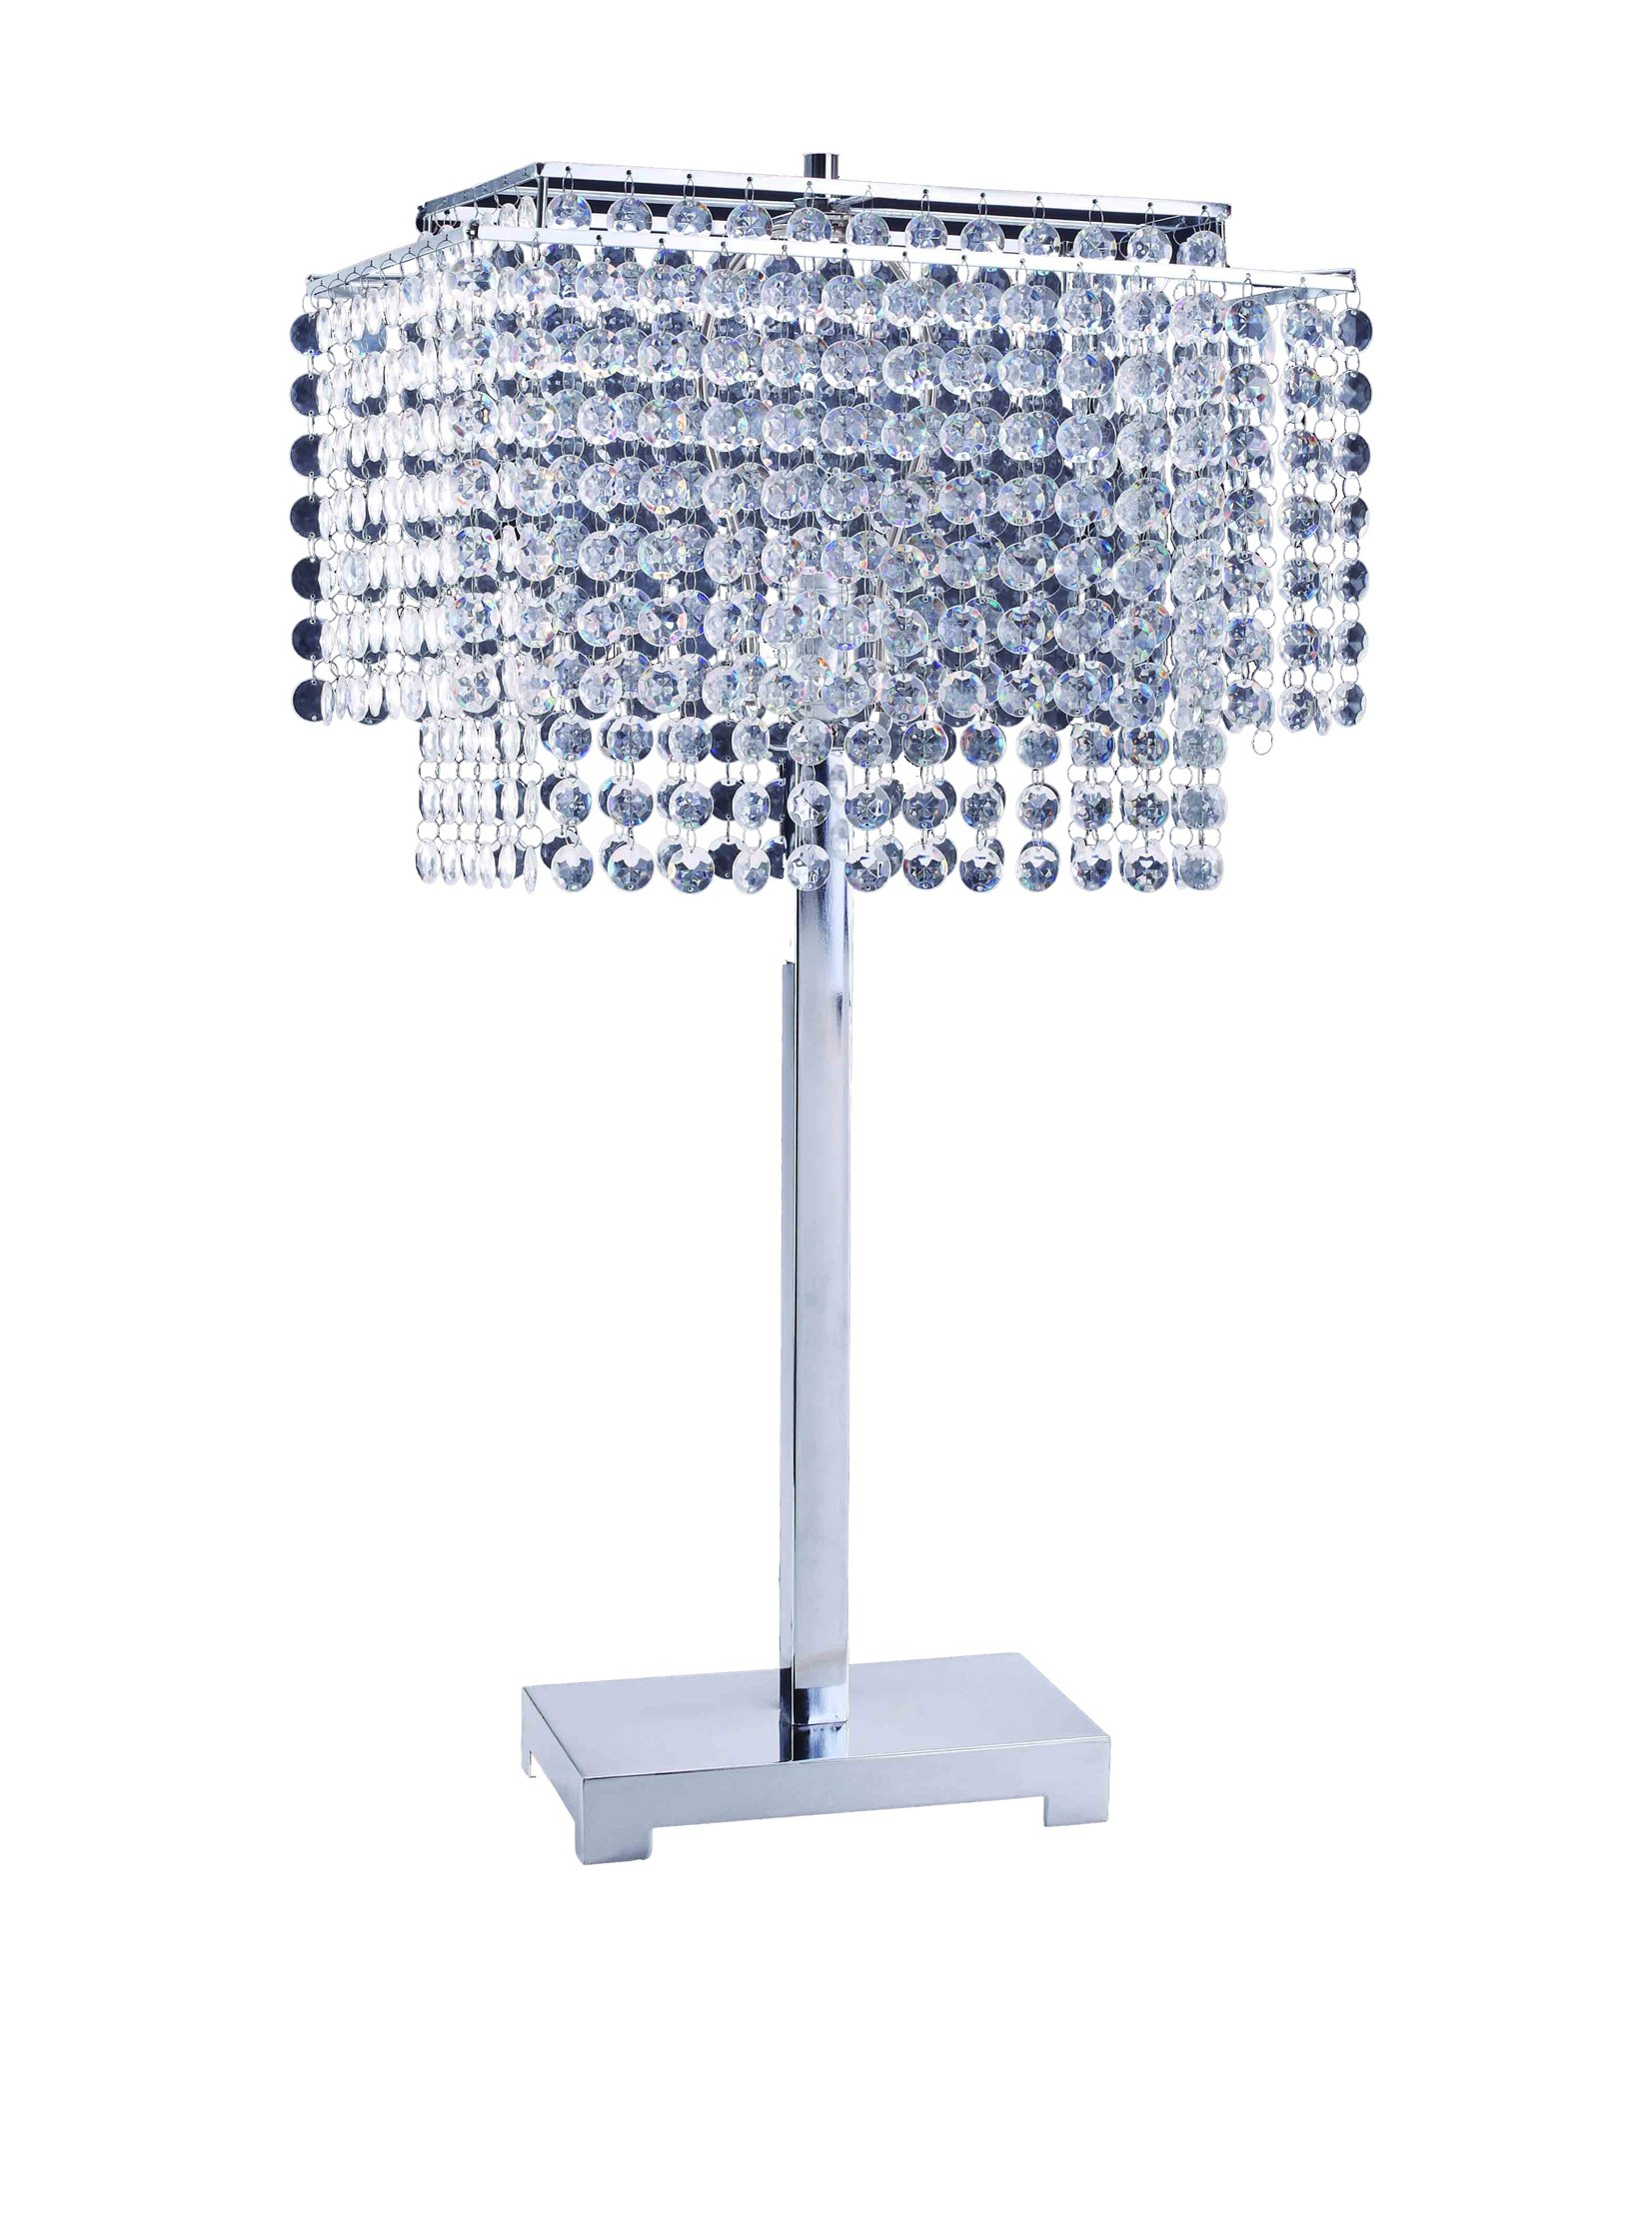 ORE International 732 28-Inch Crystal Strings Table Lamp by ORE (Image #1)